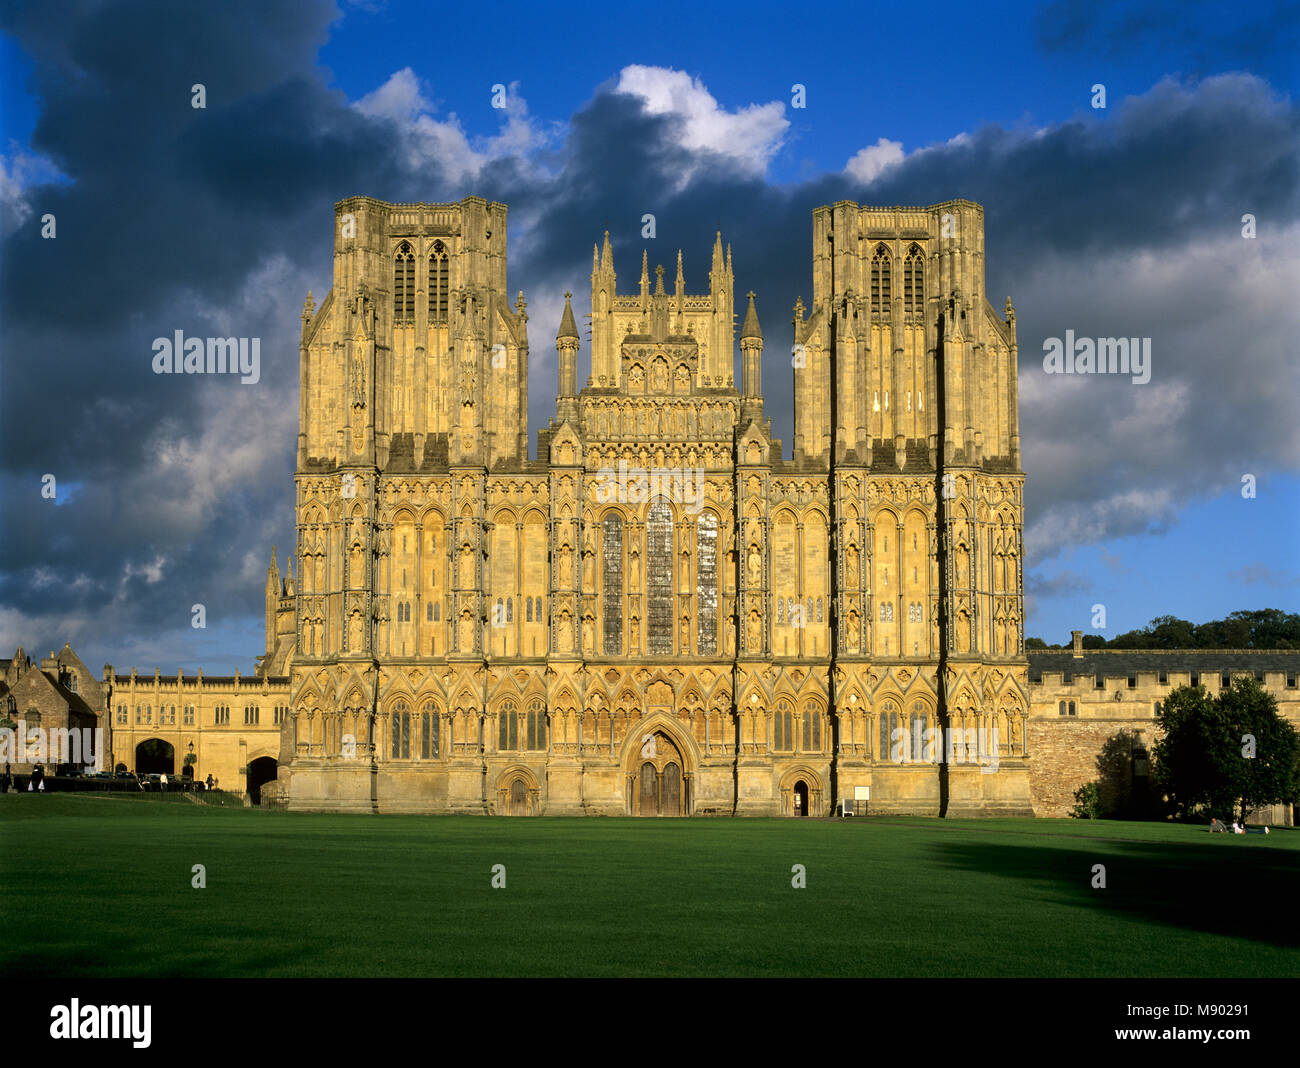 West facade of Wells Cathedral, Wells, Somerset, England, United Kingdom, Europe - Stock Image